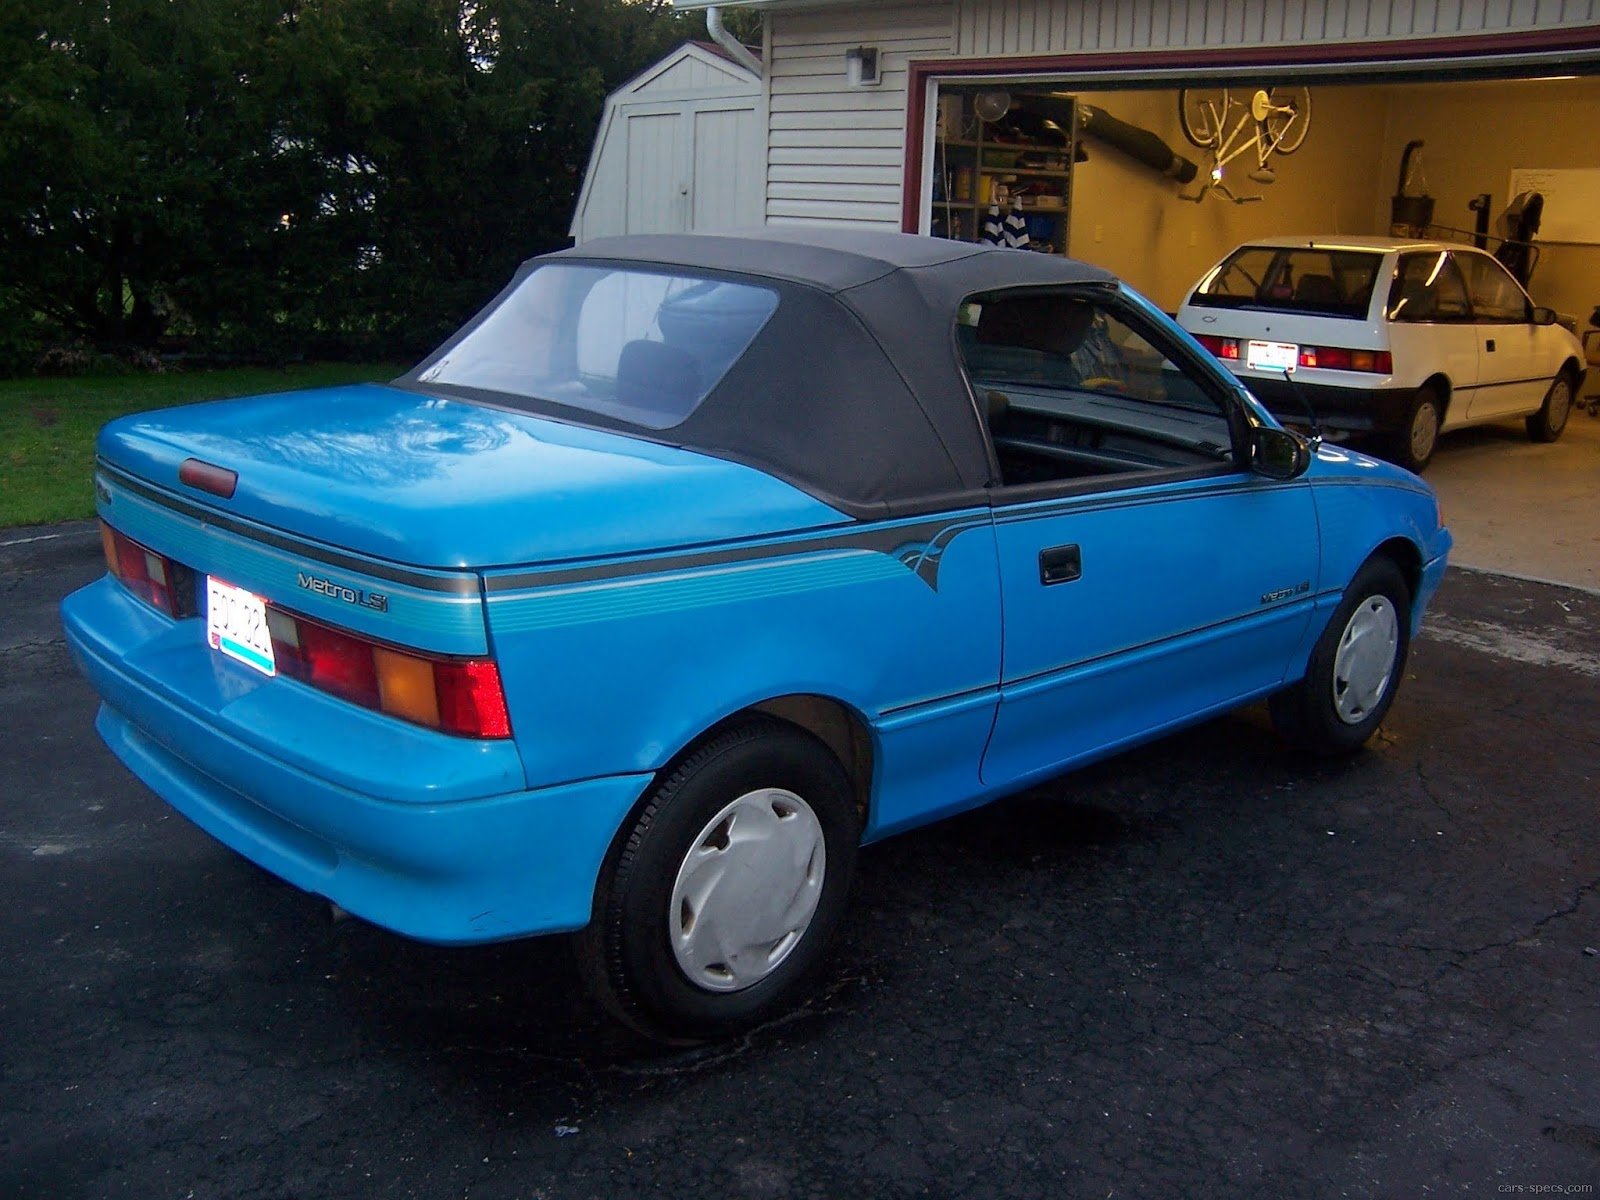 1993 Geo Metro Convertible Specifications, Pictures, Prices